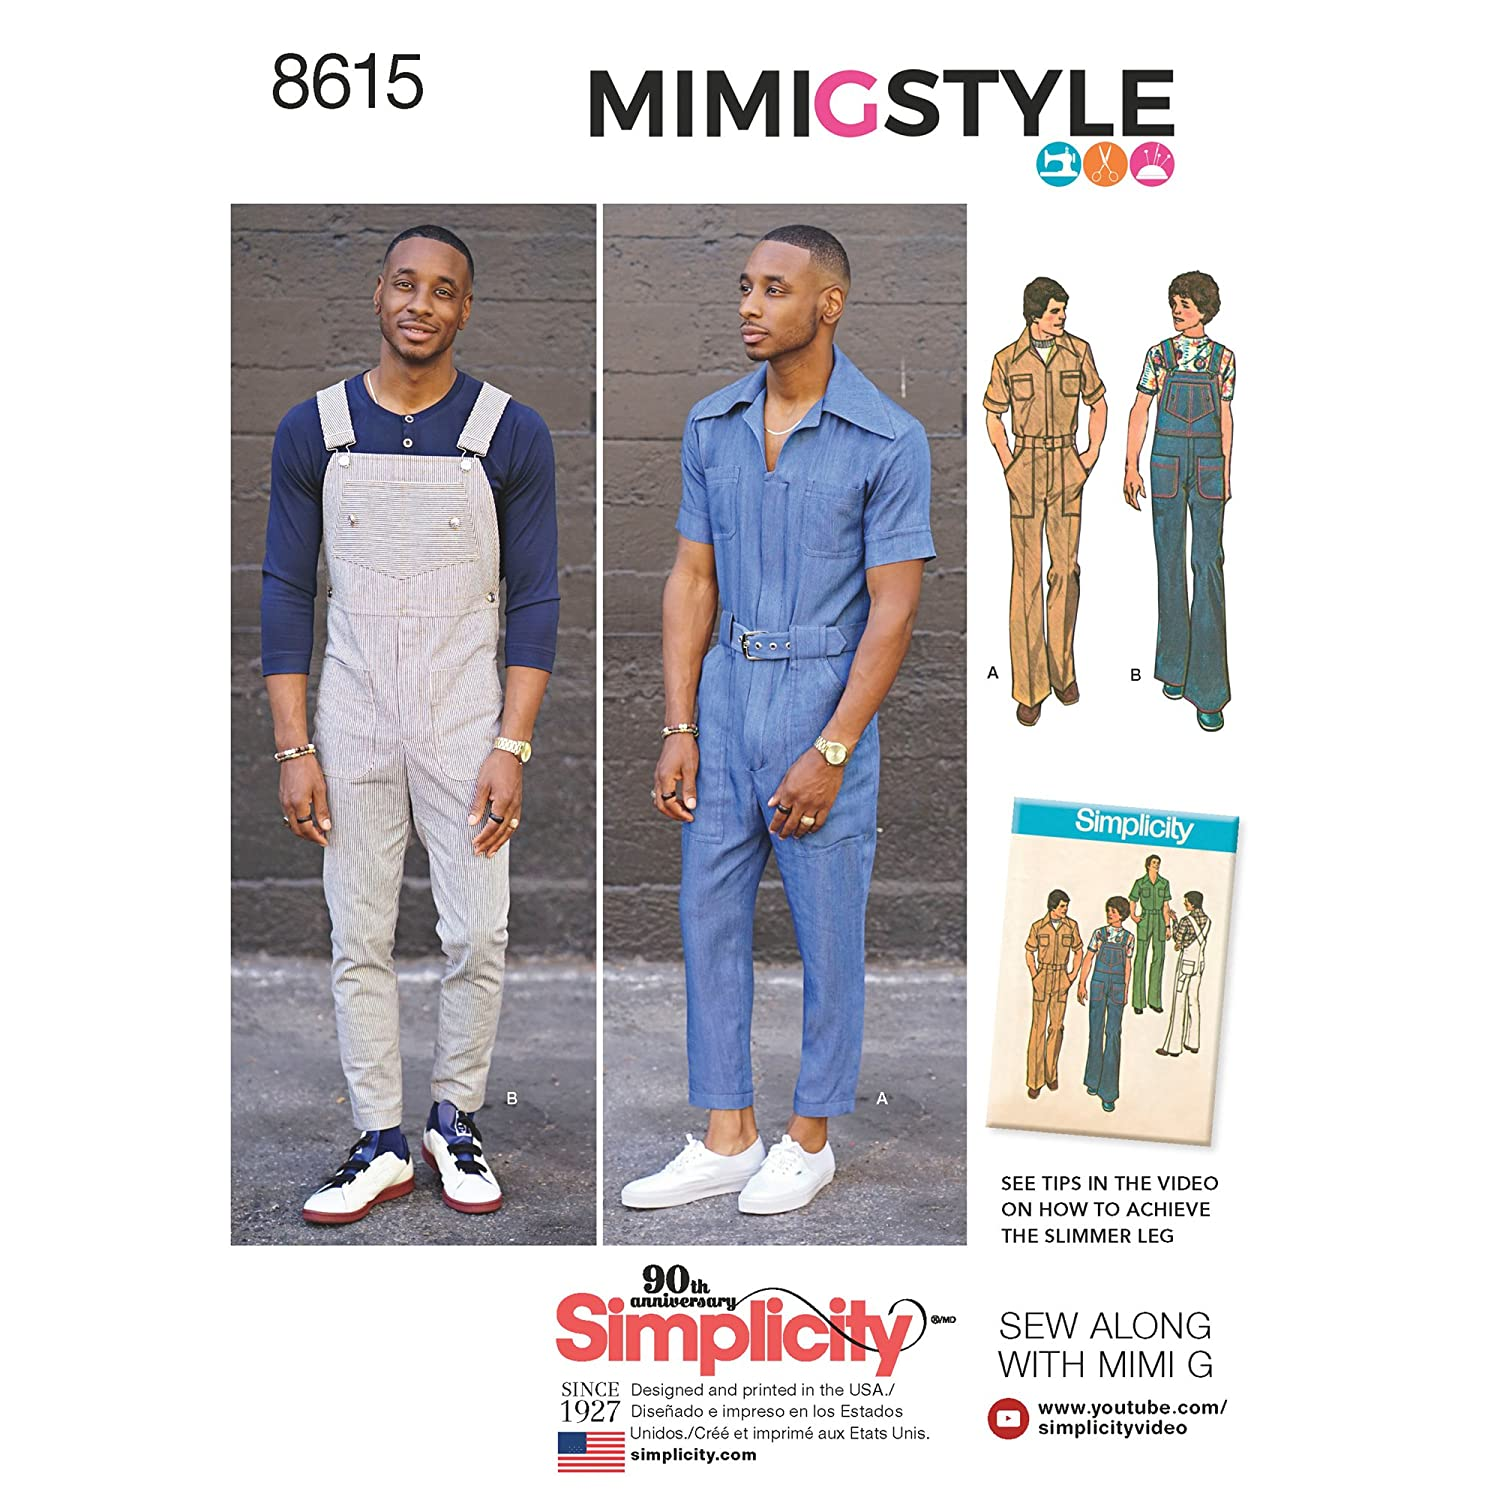 Men's Vintage Reproduction Sewing Patterns Simplicity Vintage US8615AA Vintage Jumpsuit & Overalls AA (34-36-38-40-42) $8.89 AT vintagedancer.com